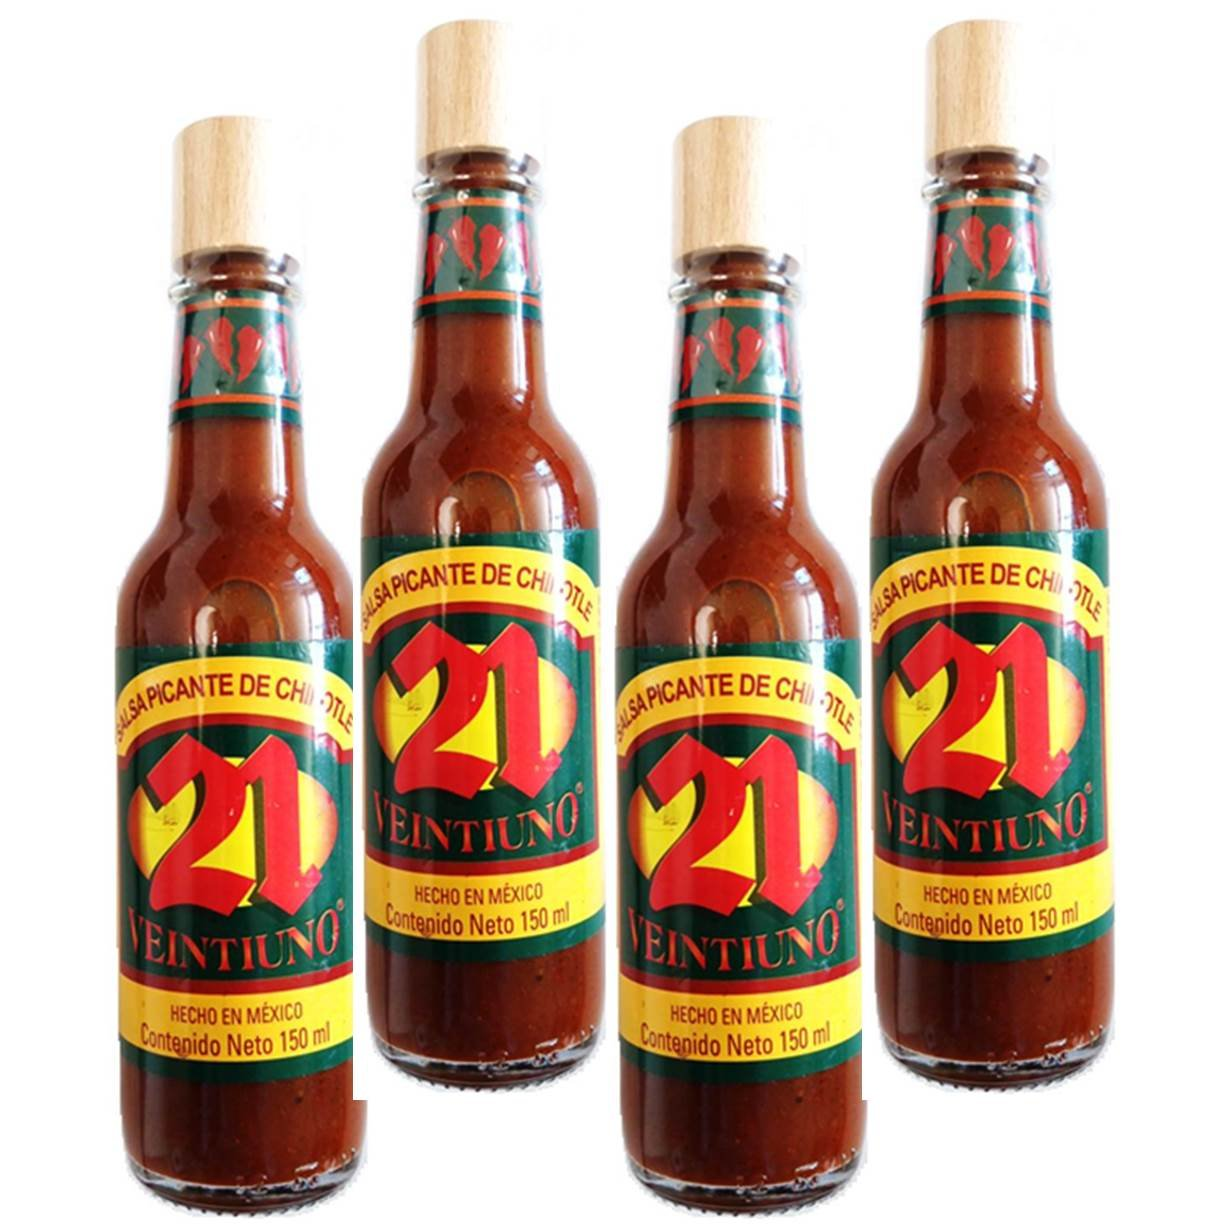 Amazon.com : Salsa 21 - Salsa Picante Mexicana (Mexican Hot Sauce) (Pack of 6) (Chipotle) : Grocery & Gourmet Food